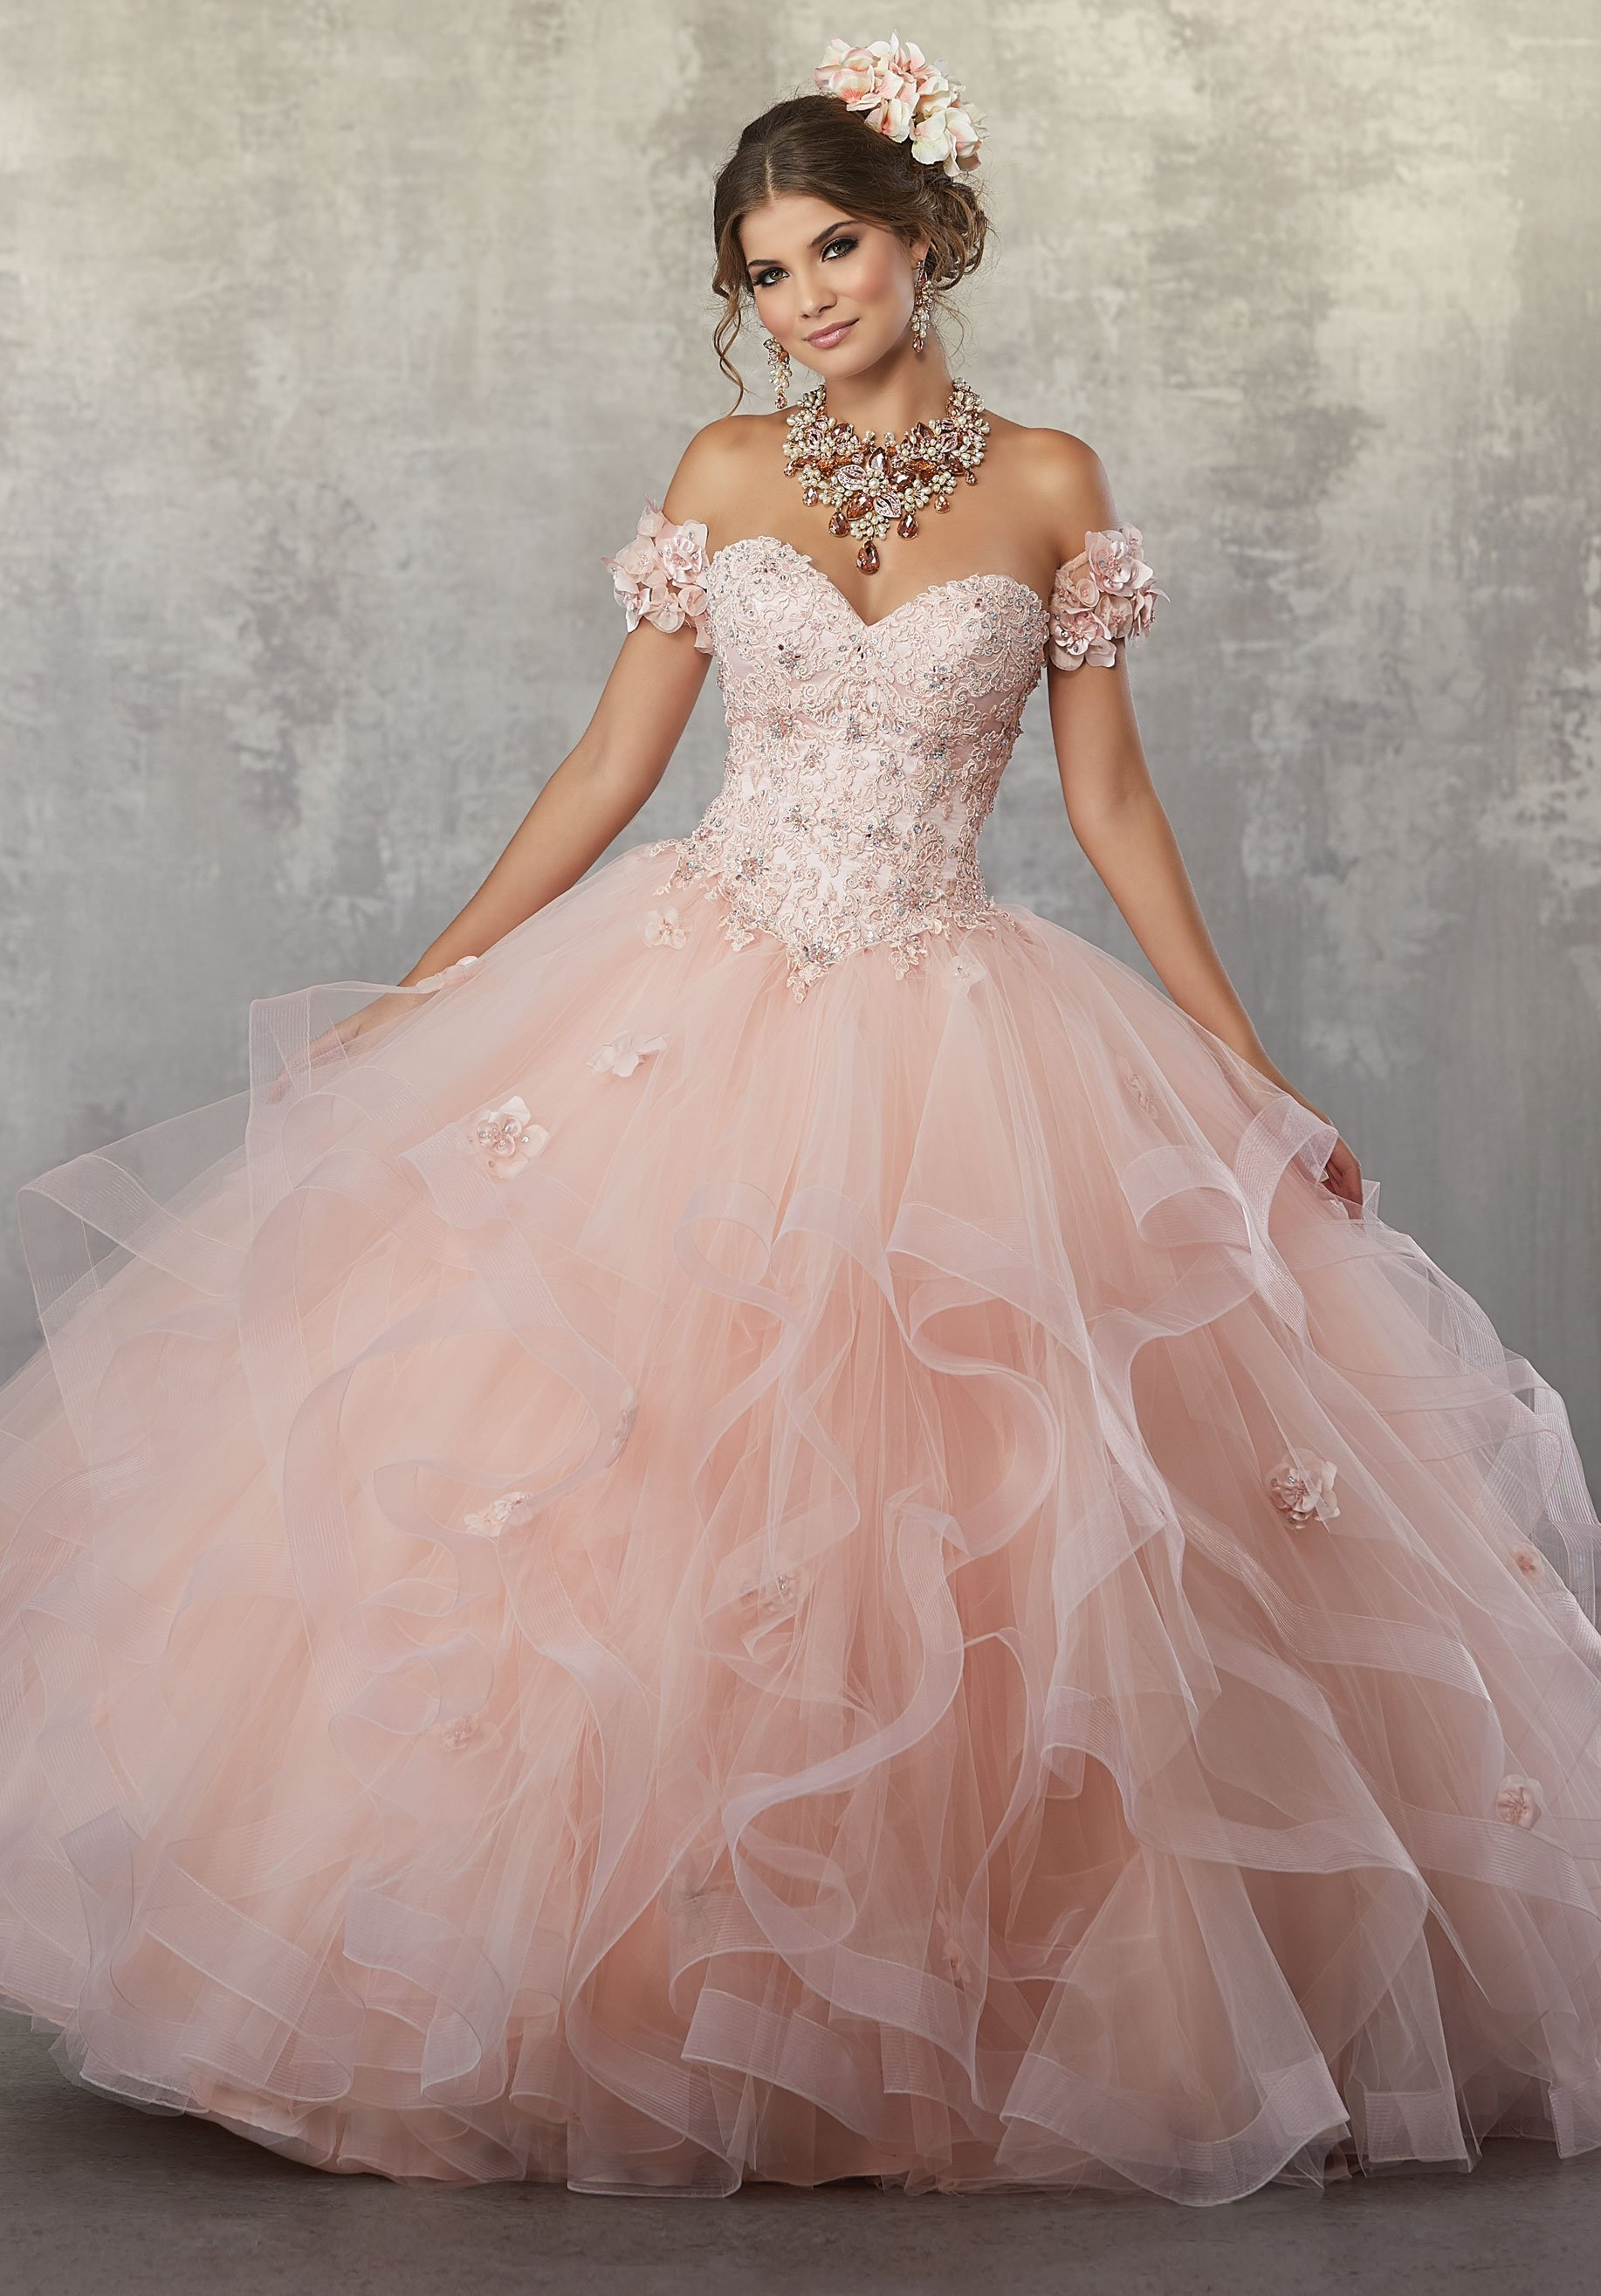 Quinceanera Dress 89174 Vizcaya Collection